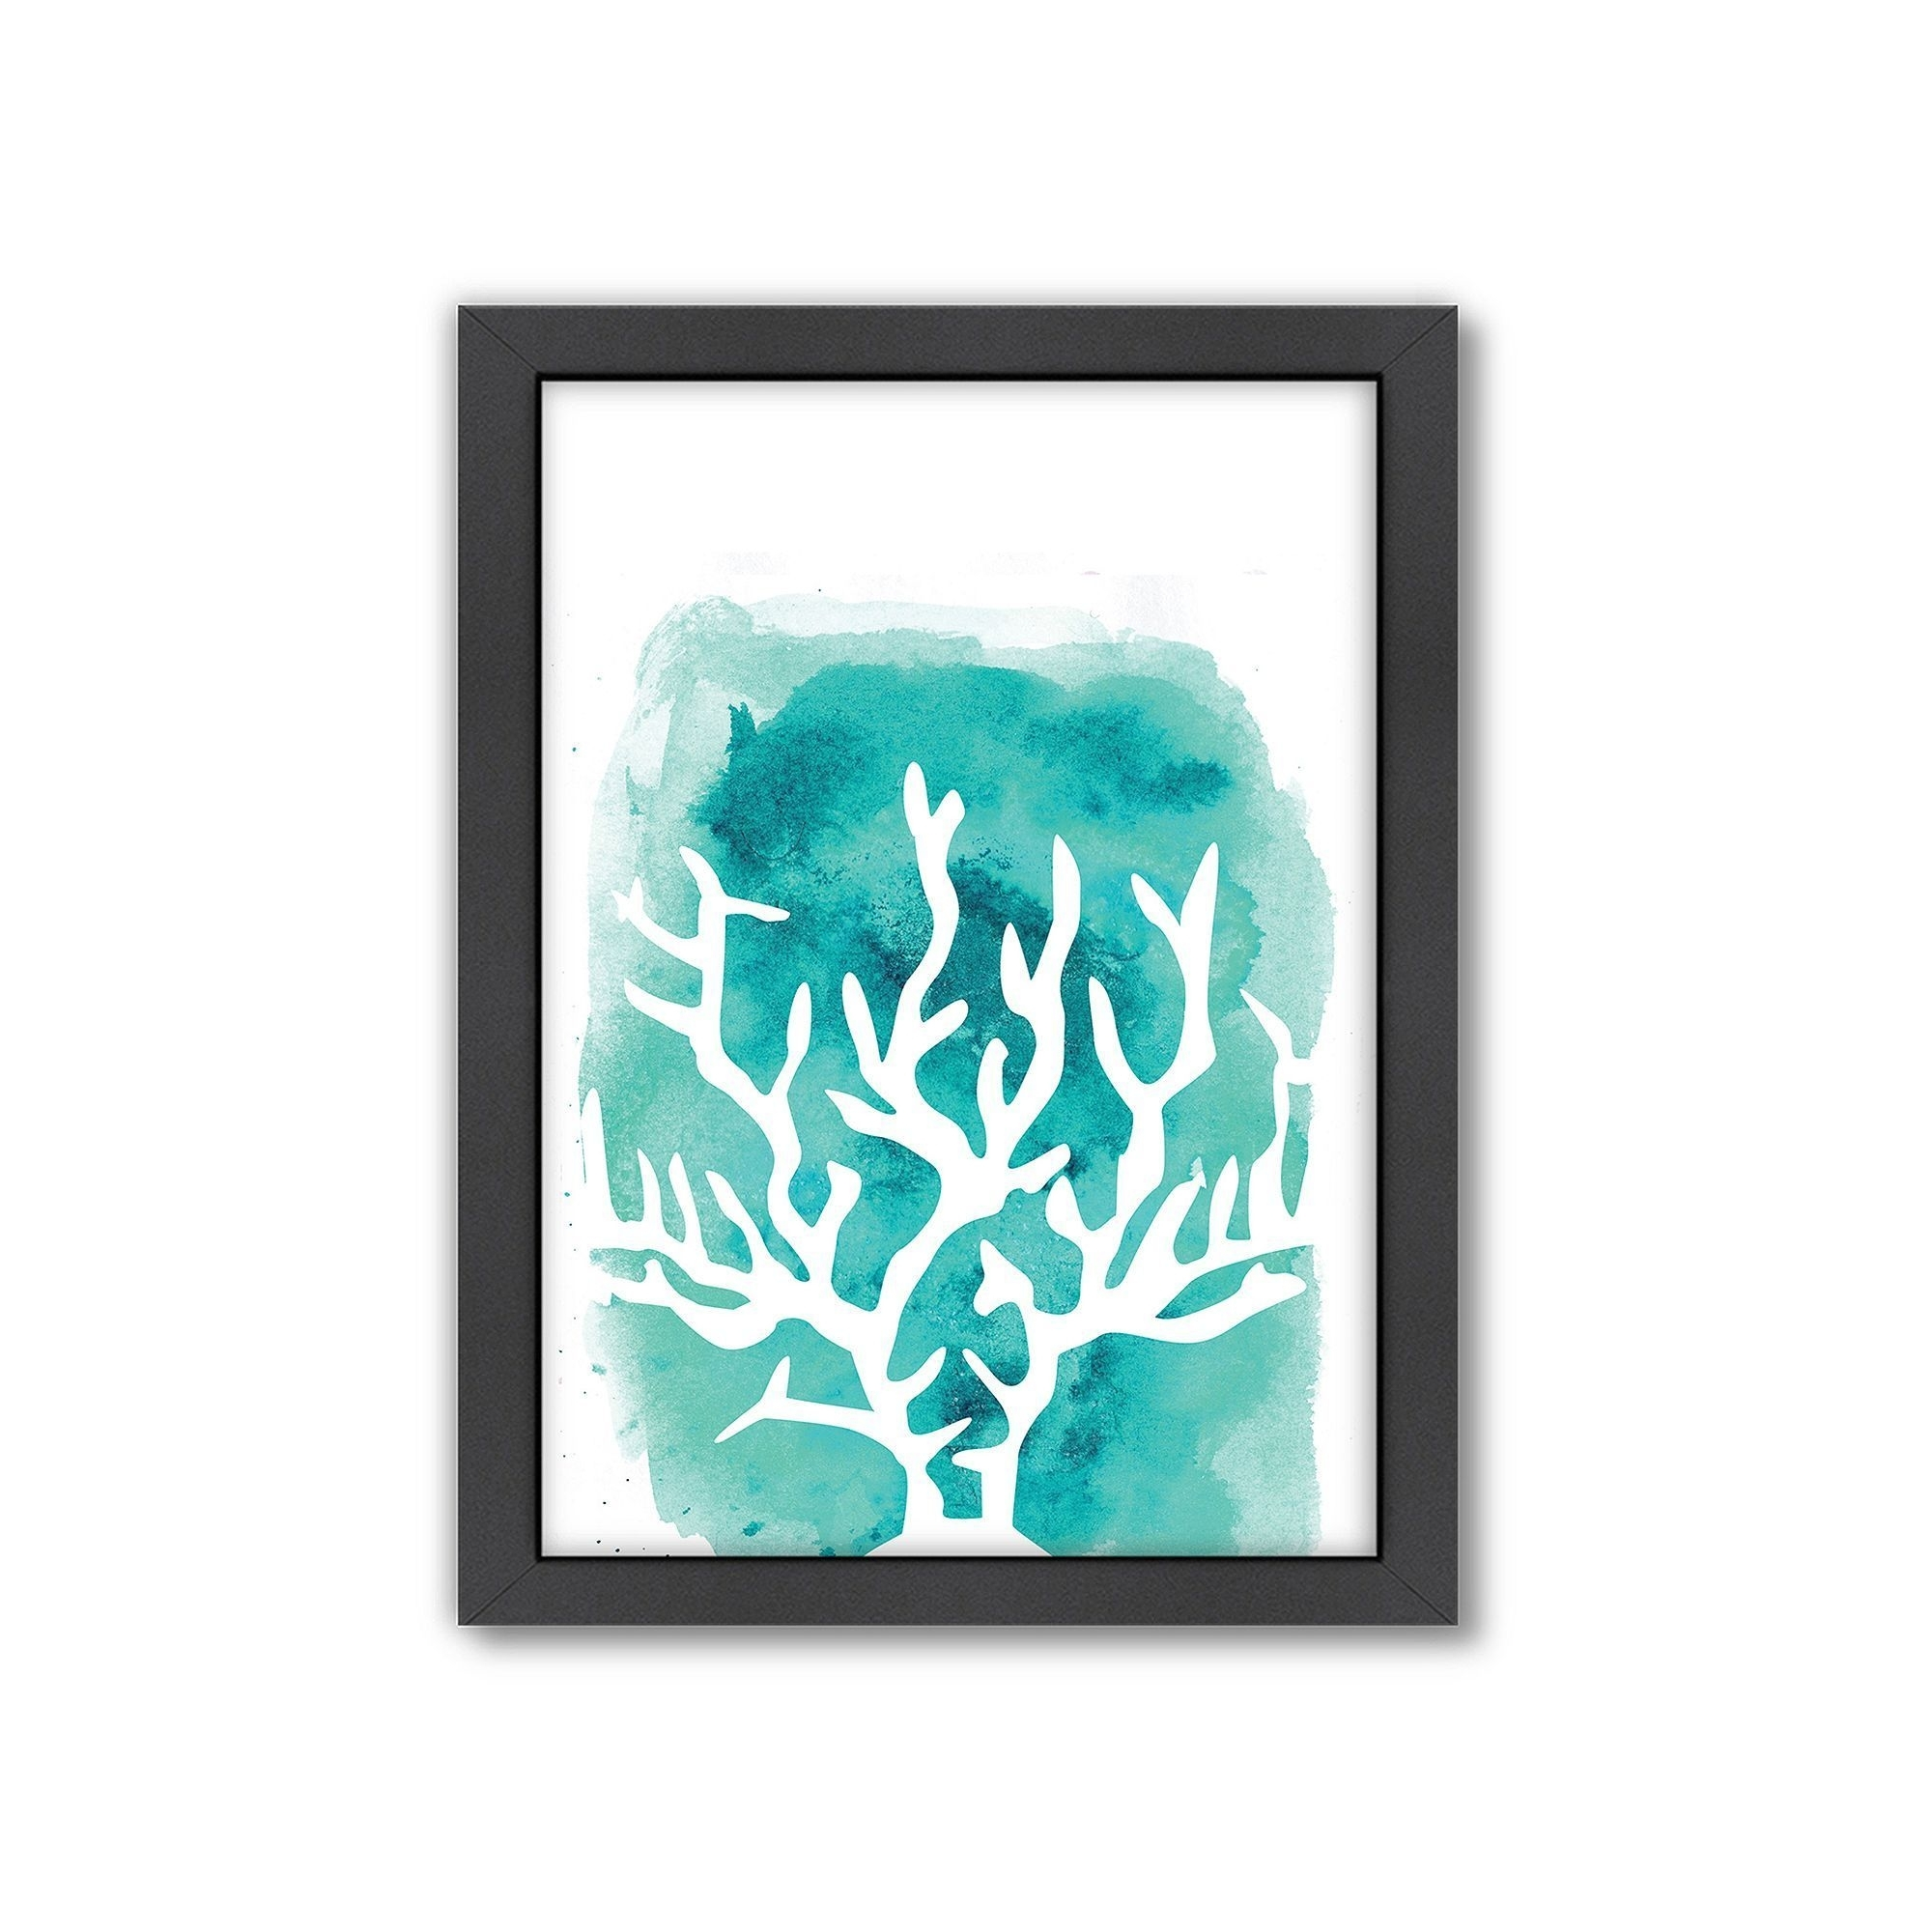 Americanflat Coral Framed Wall Art, Grey | Framed Wall Art And Products Throughout Most Recently Released Coral Wall Art (View 3 of 20)